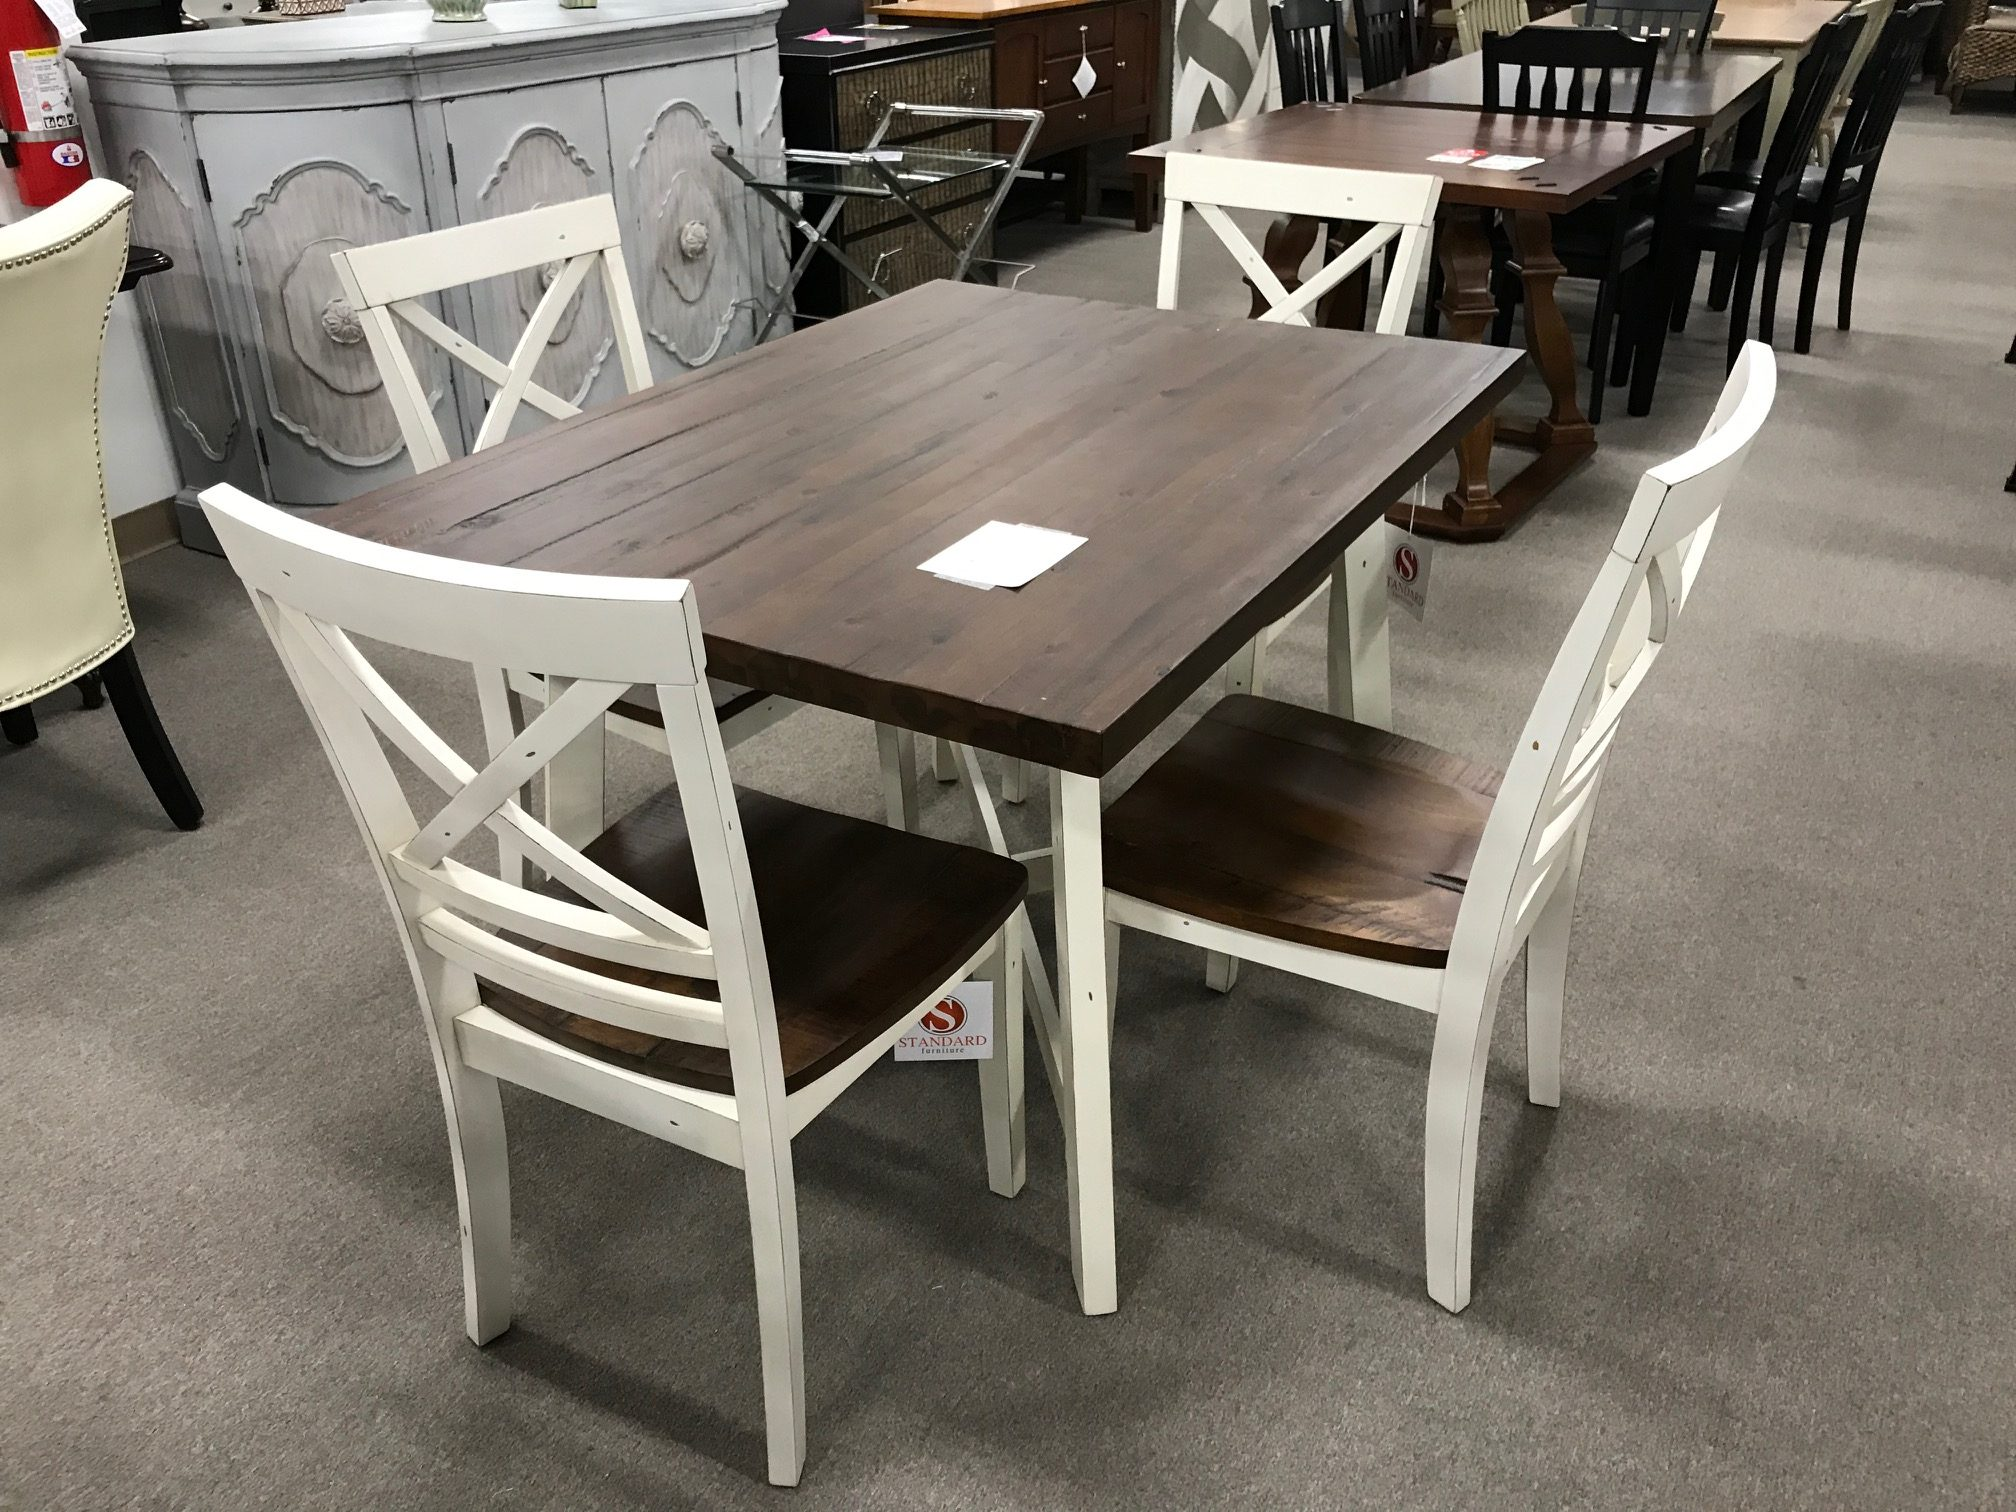 Reclaimed Table And 4 Chairs Heavner Furniture Market